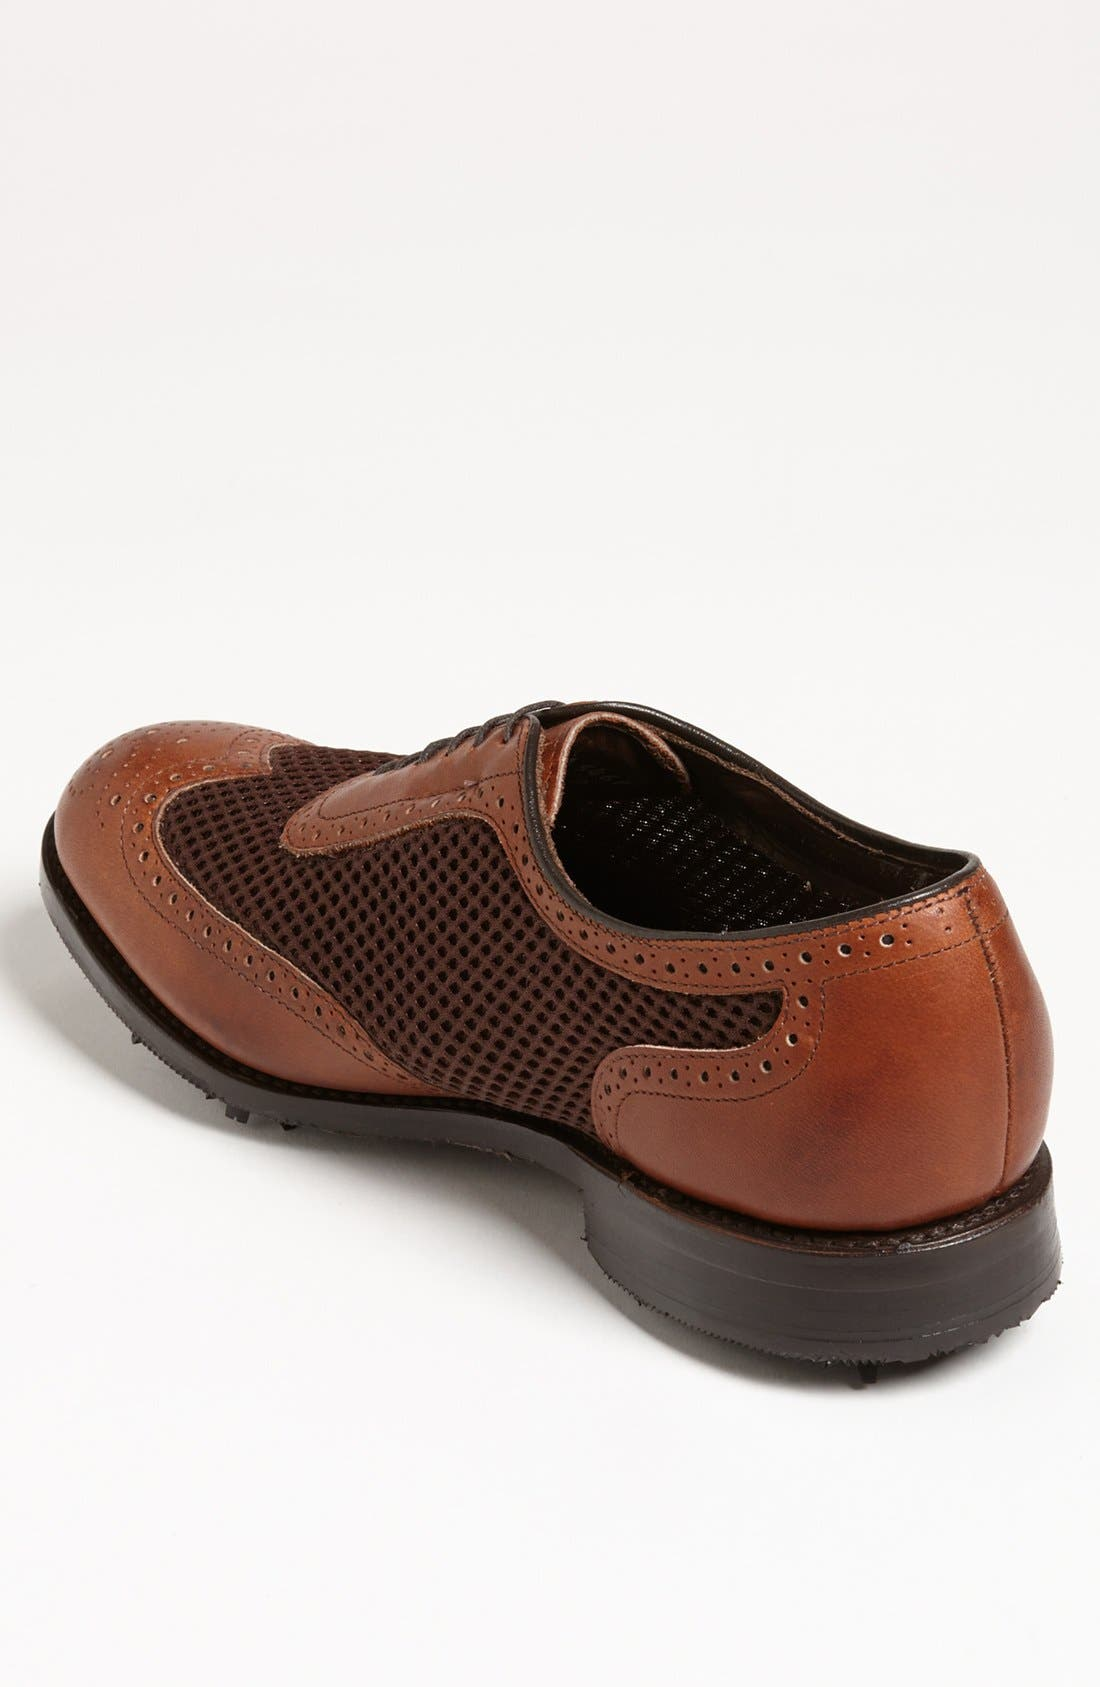 Alternate Image 2  - Allen Edmonds 'Double Eagle' Golf Shoe (Men)